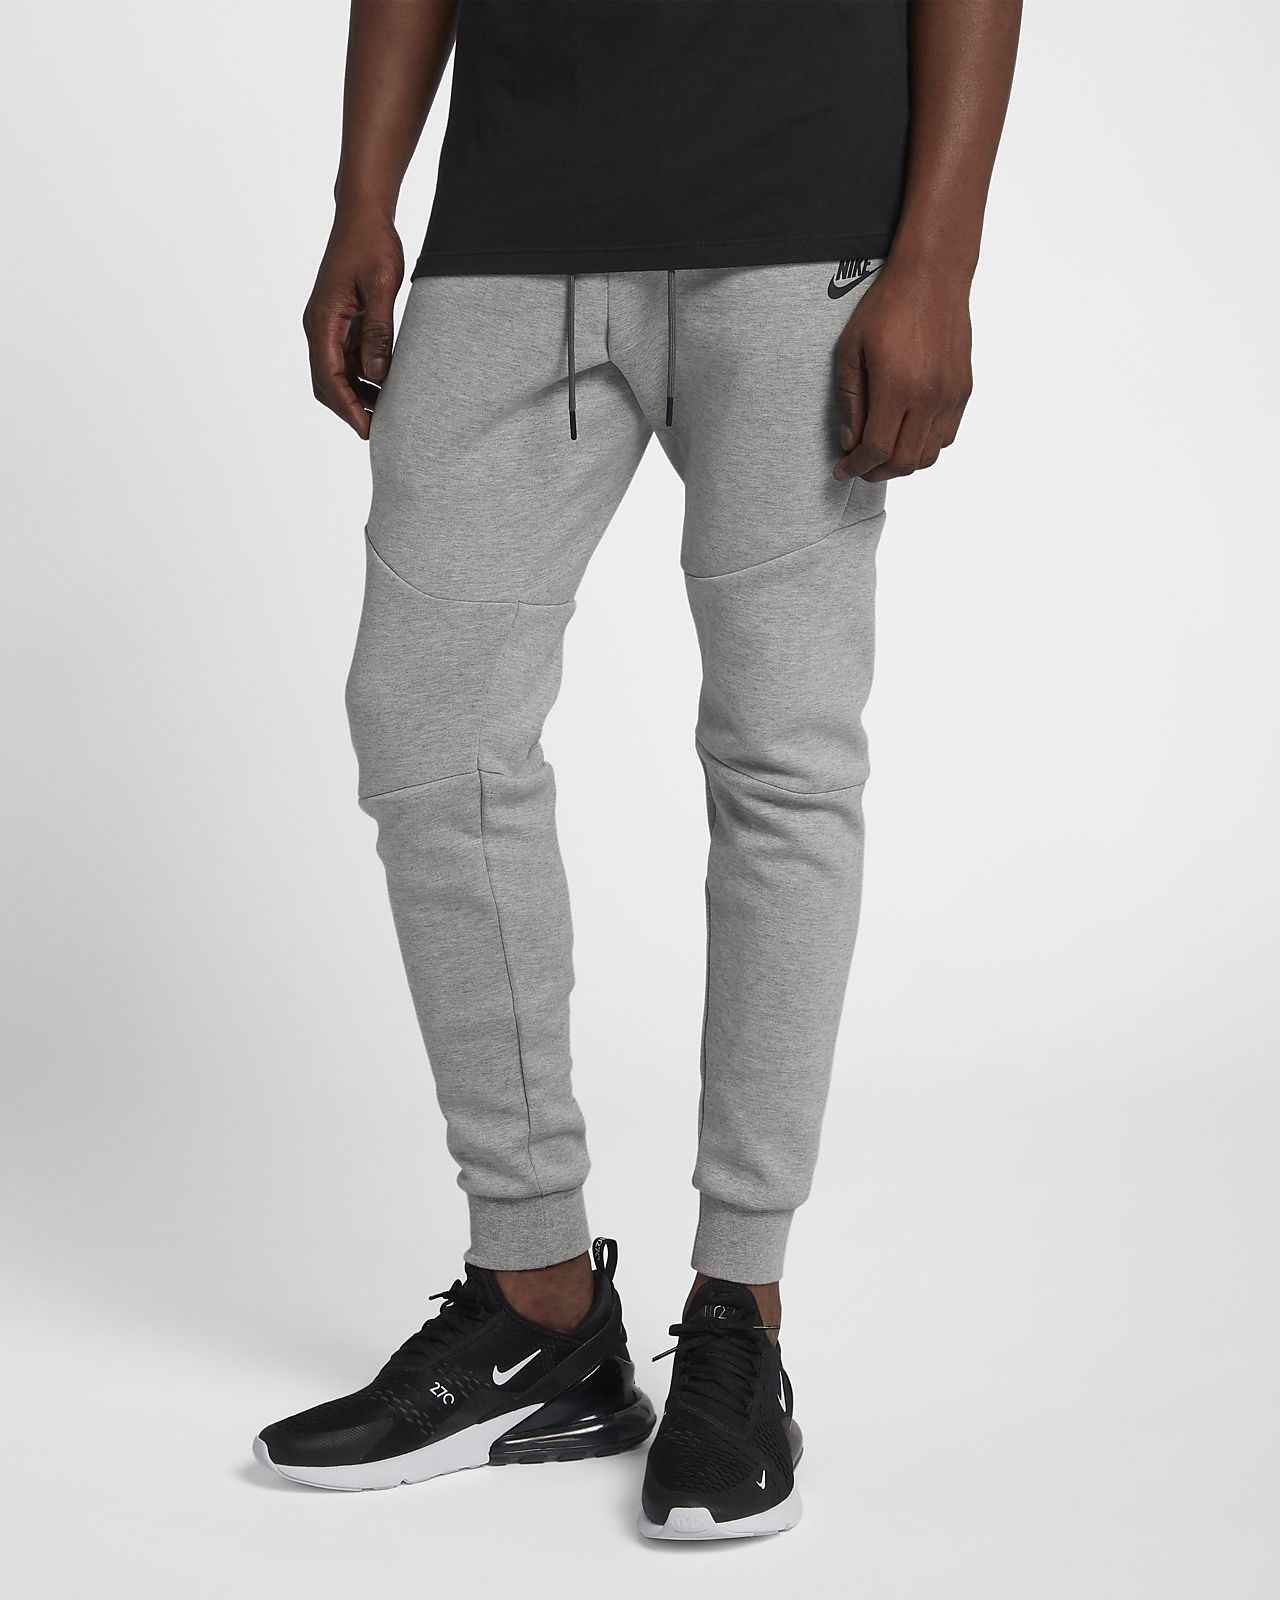 7804167f79a Nike Sportswear Tech Fleece Men's Joggers. Nike.com